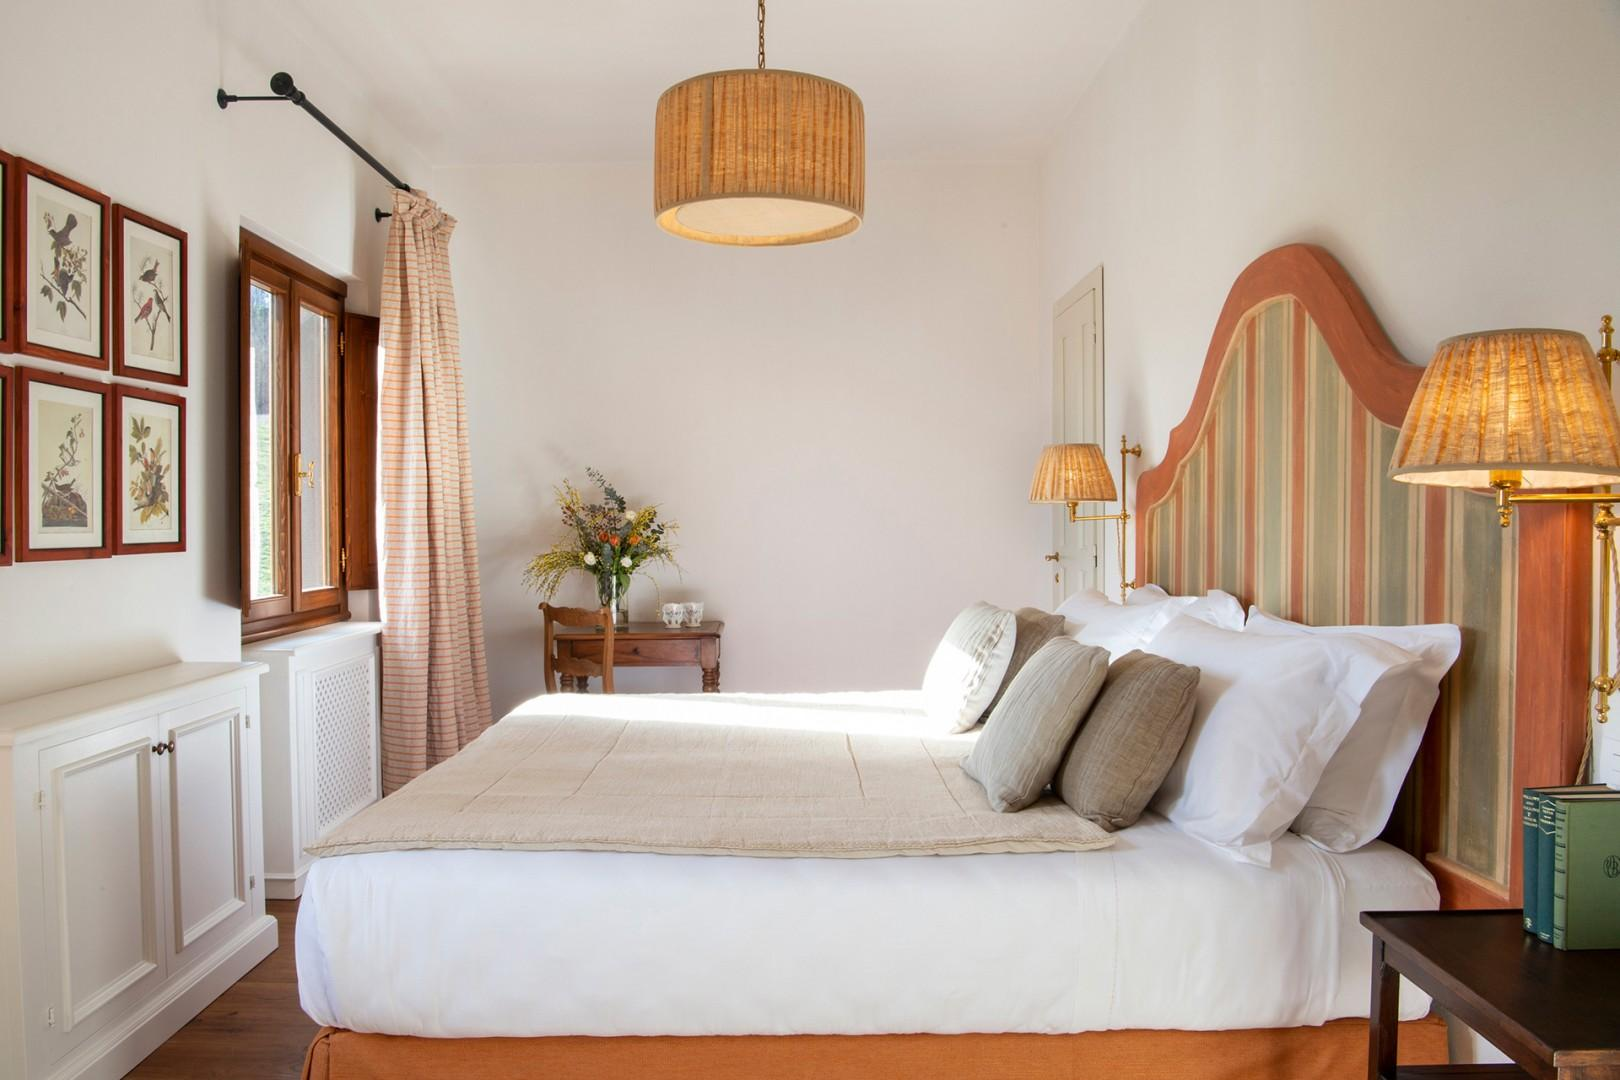 All 5 bedrooms have an en suite bathroom and beds that can be prepared together or apart as two beds.